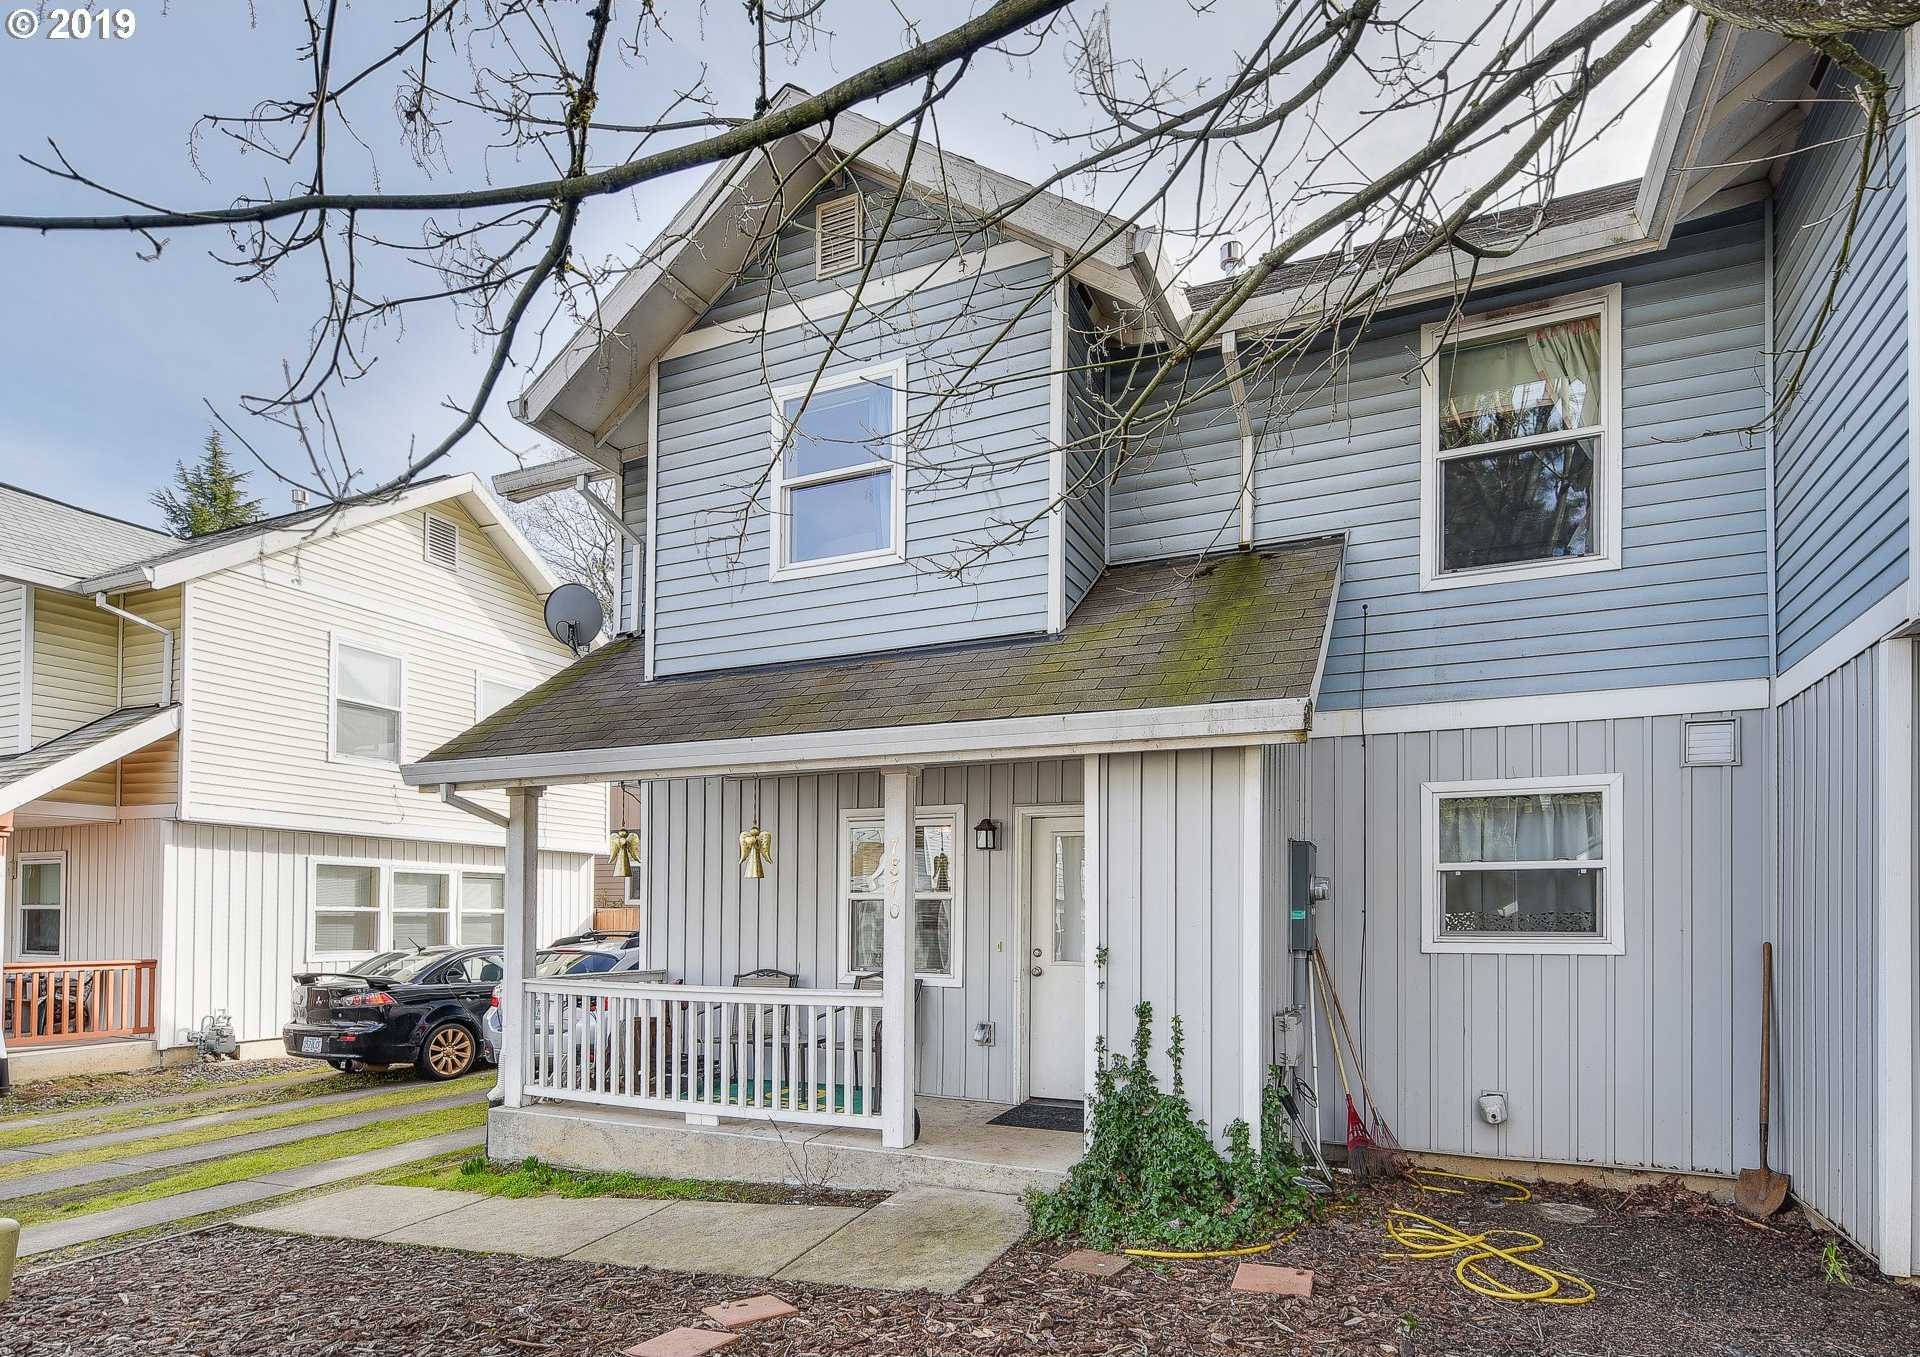 $158,100 - 3Br/2Ba -  for Sale in Milwaukie